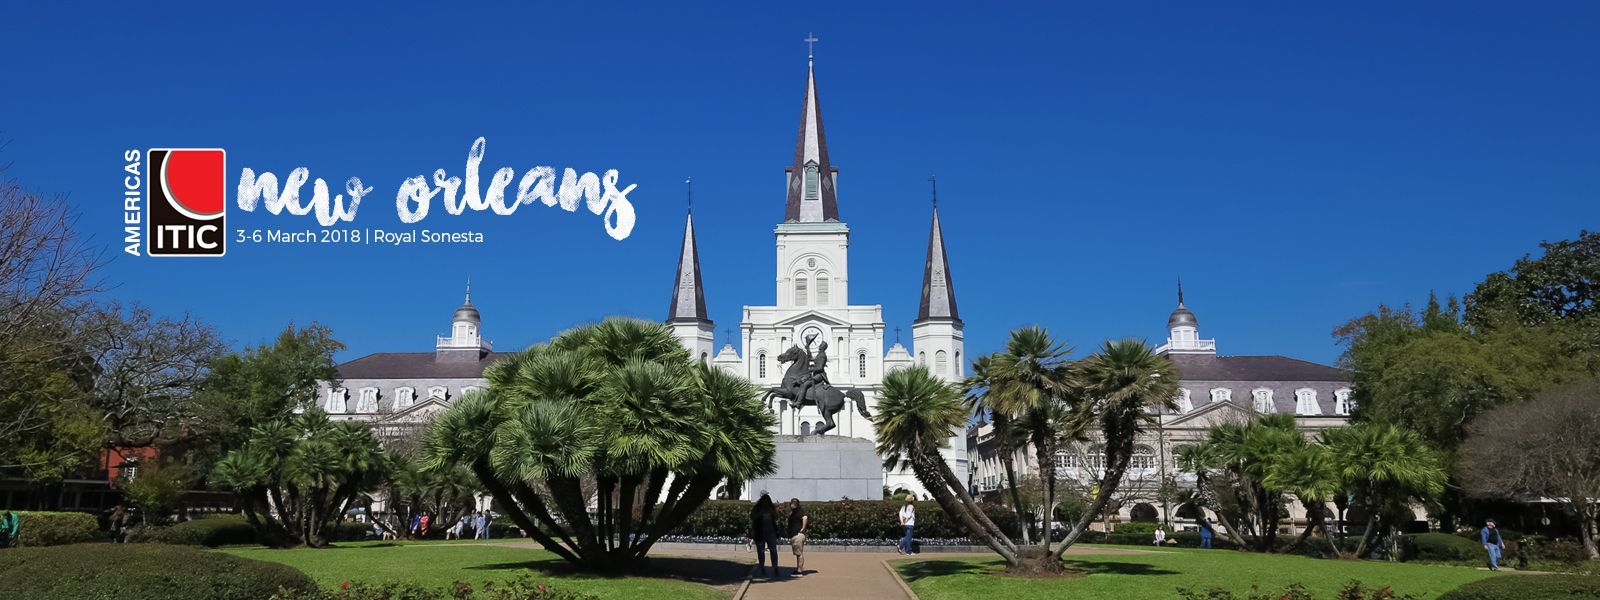 International Travel & Health Insurance Conference, New Orleans 2018